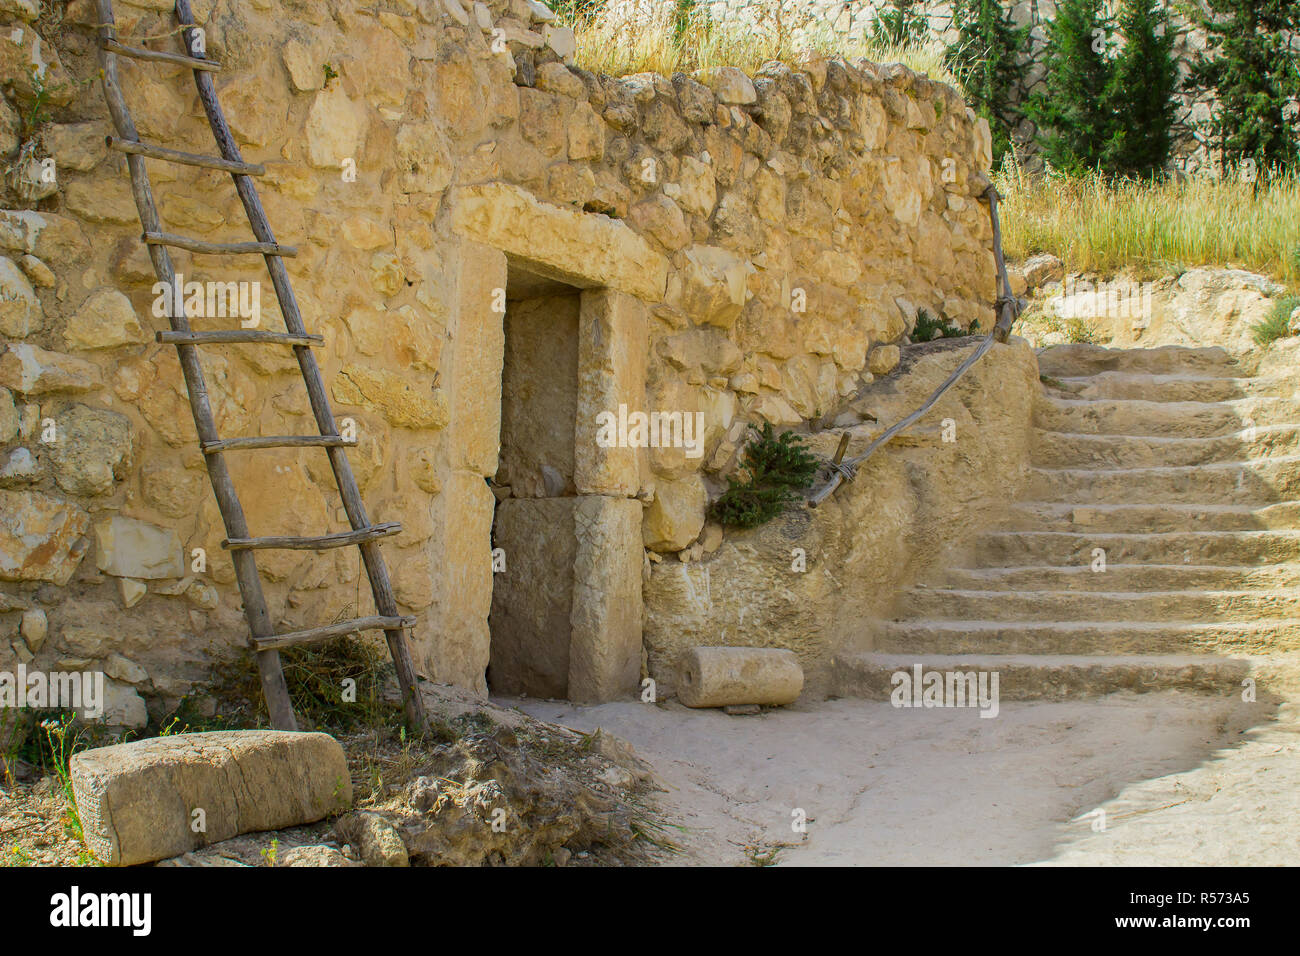 A retro style stone house in the open air museum of Nazareth Village Israel. houses in the modern Nazareth can be seen in the background. This site gi Stock Photo